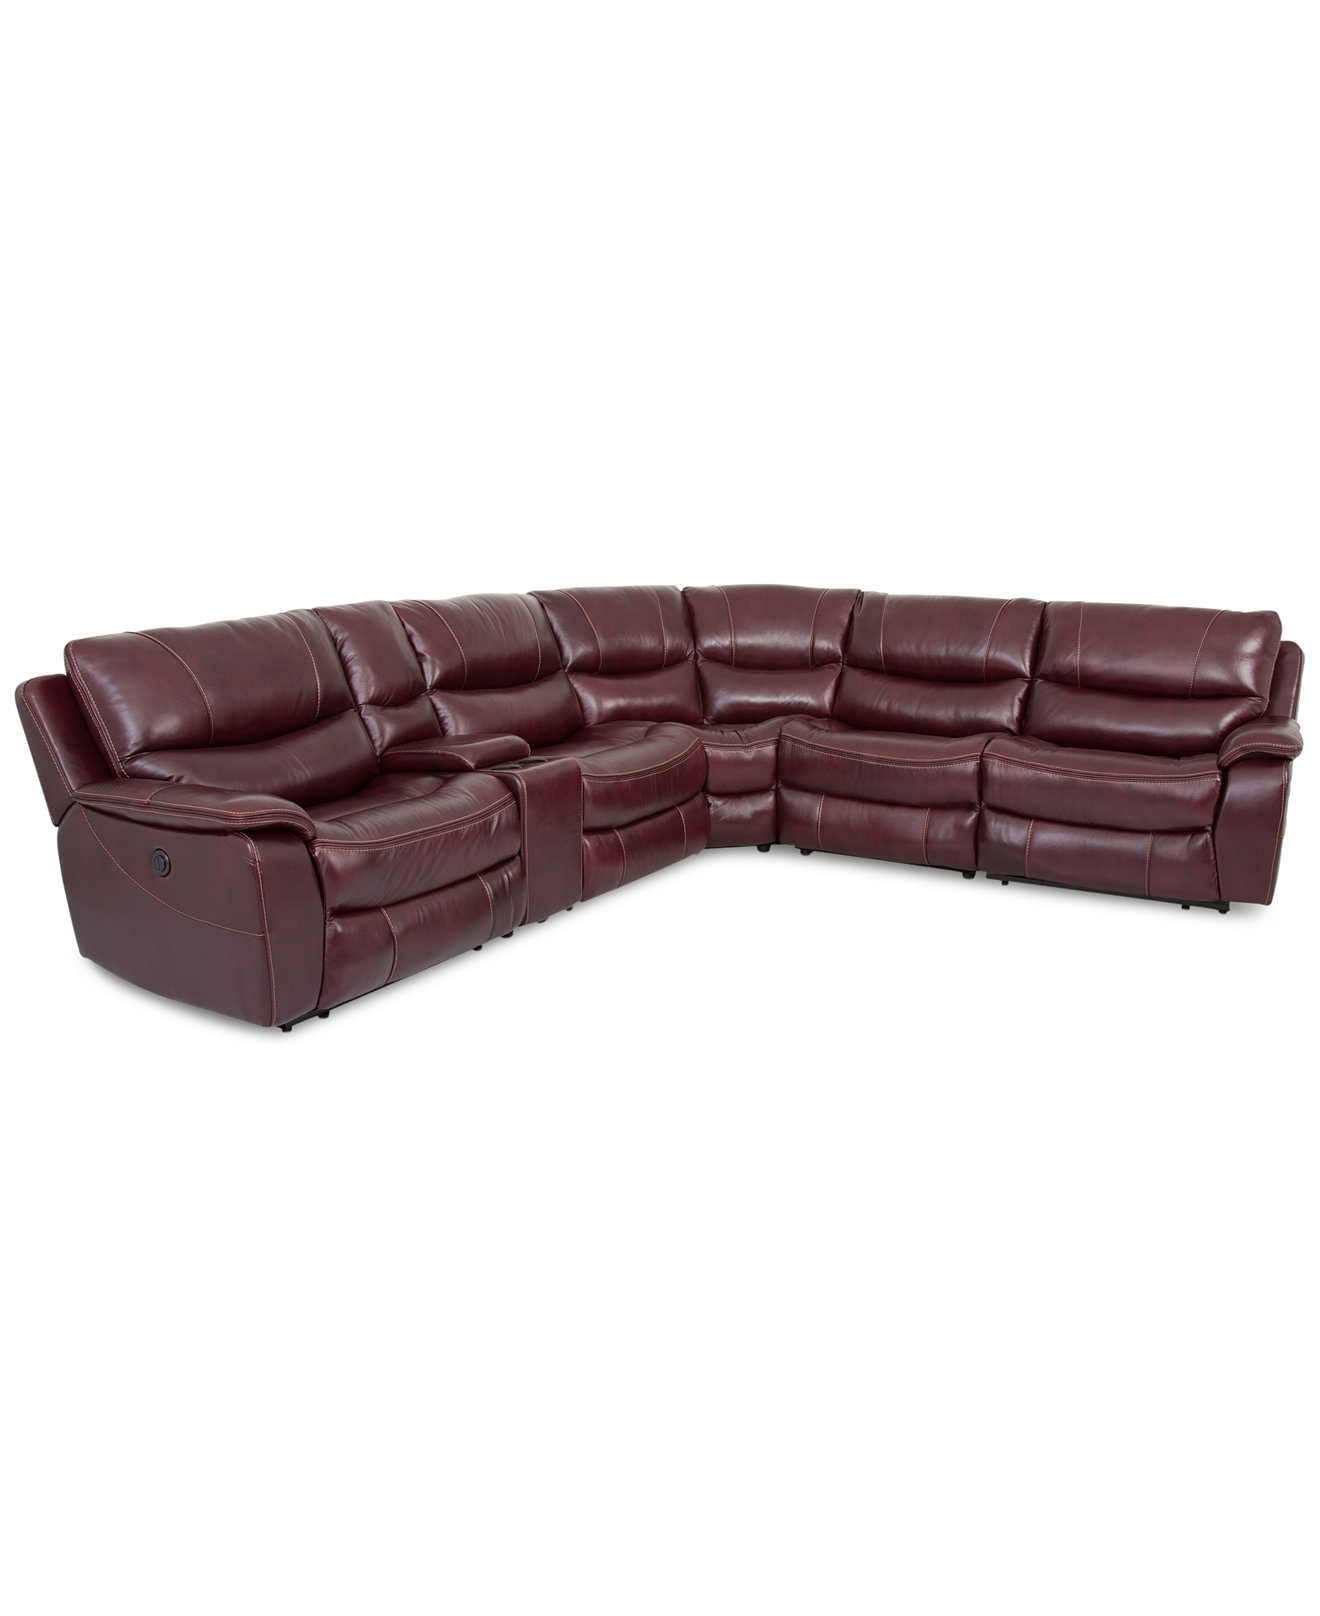 Closeout! Daren Leather 6 Pc Sectional Sofa With 3 Power Recliners For Jedd Fabric Reclining Sectional Sofas (Image 1 of 10)